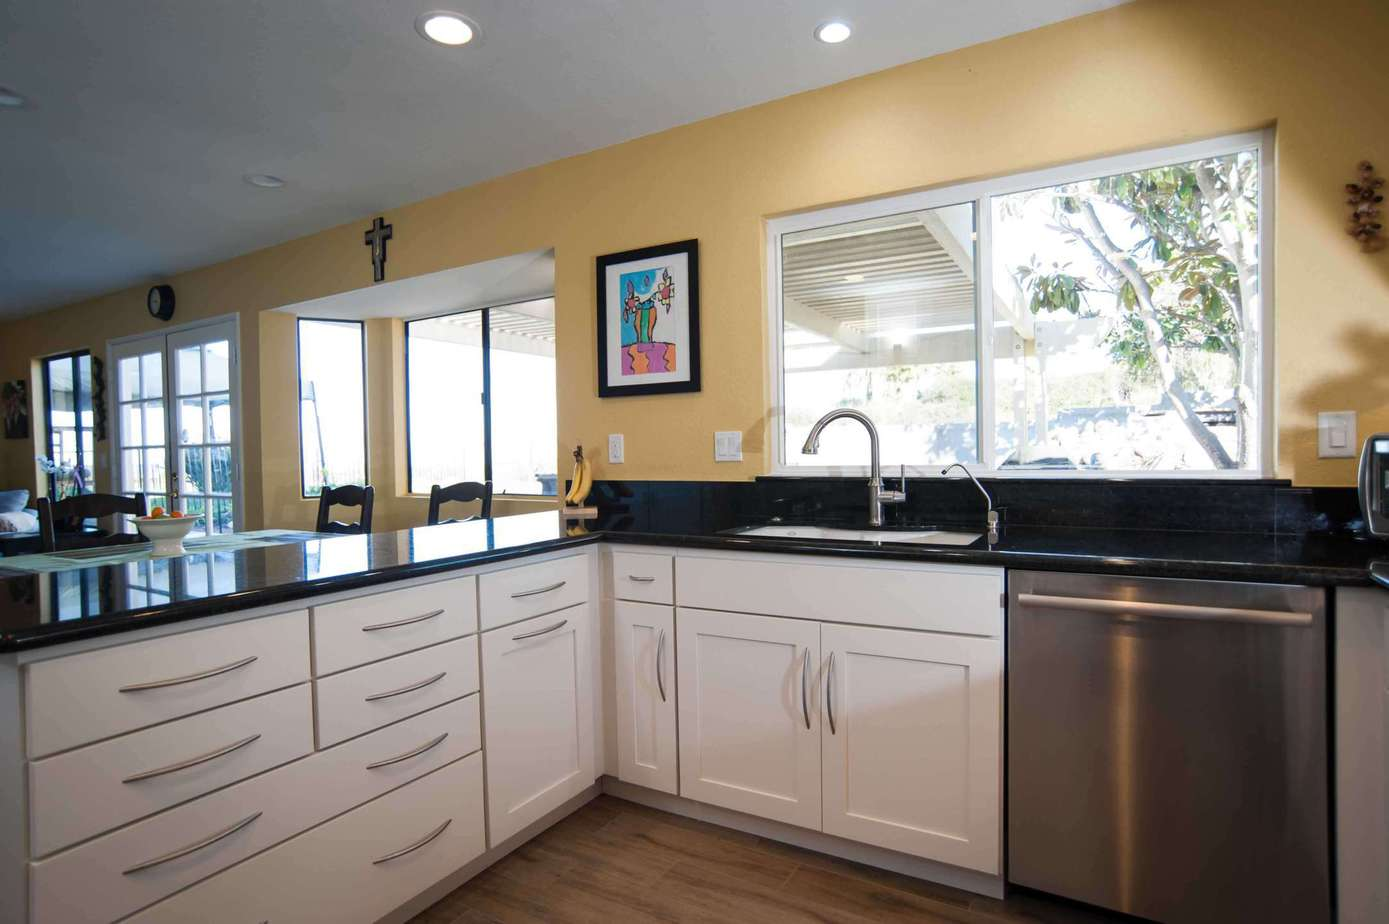 San diego kitchen remodeling classic home improvements - Open concept kitchen design ...